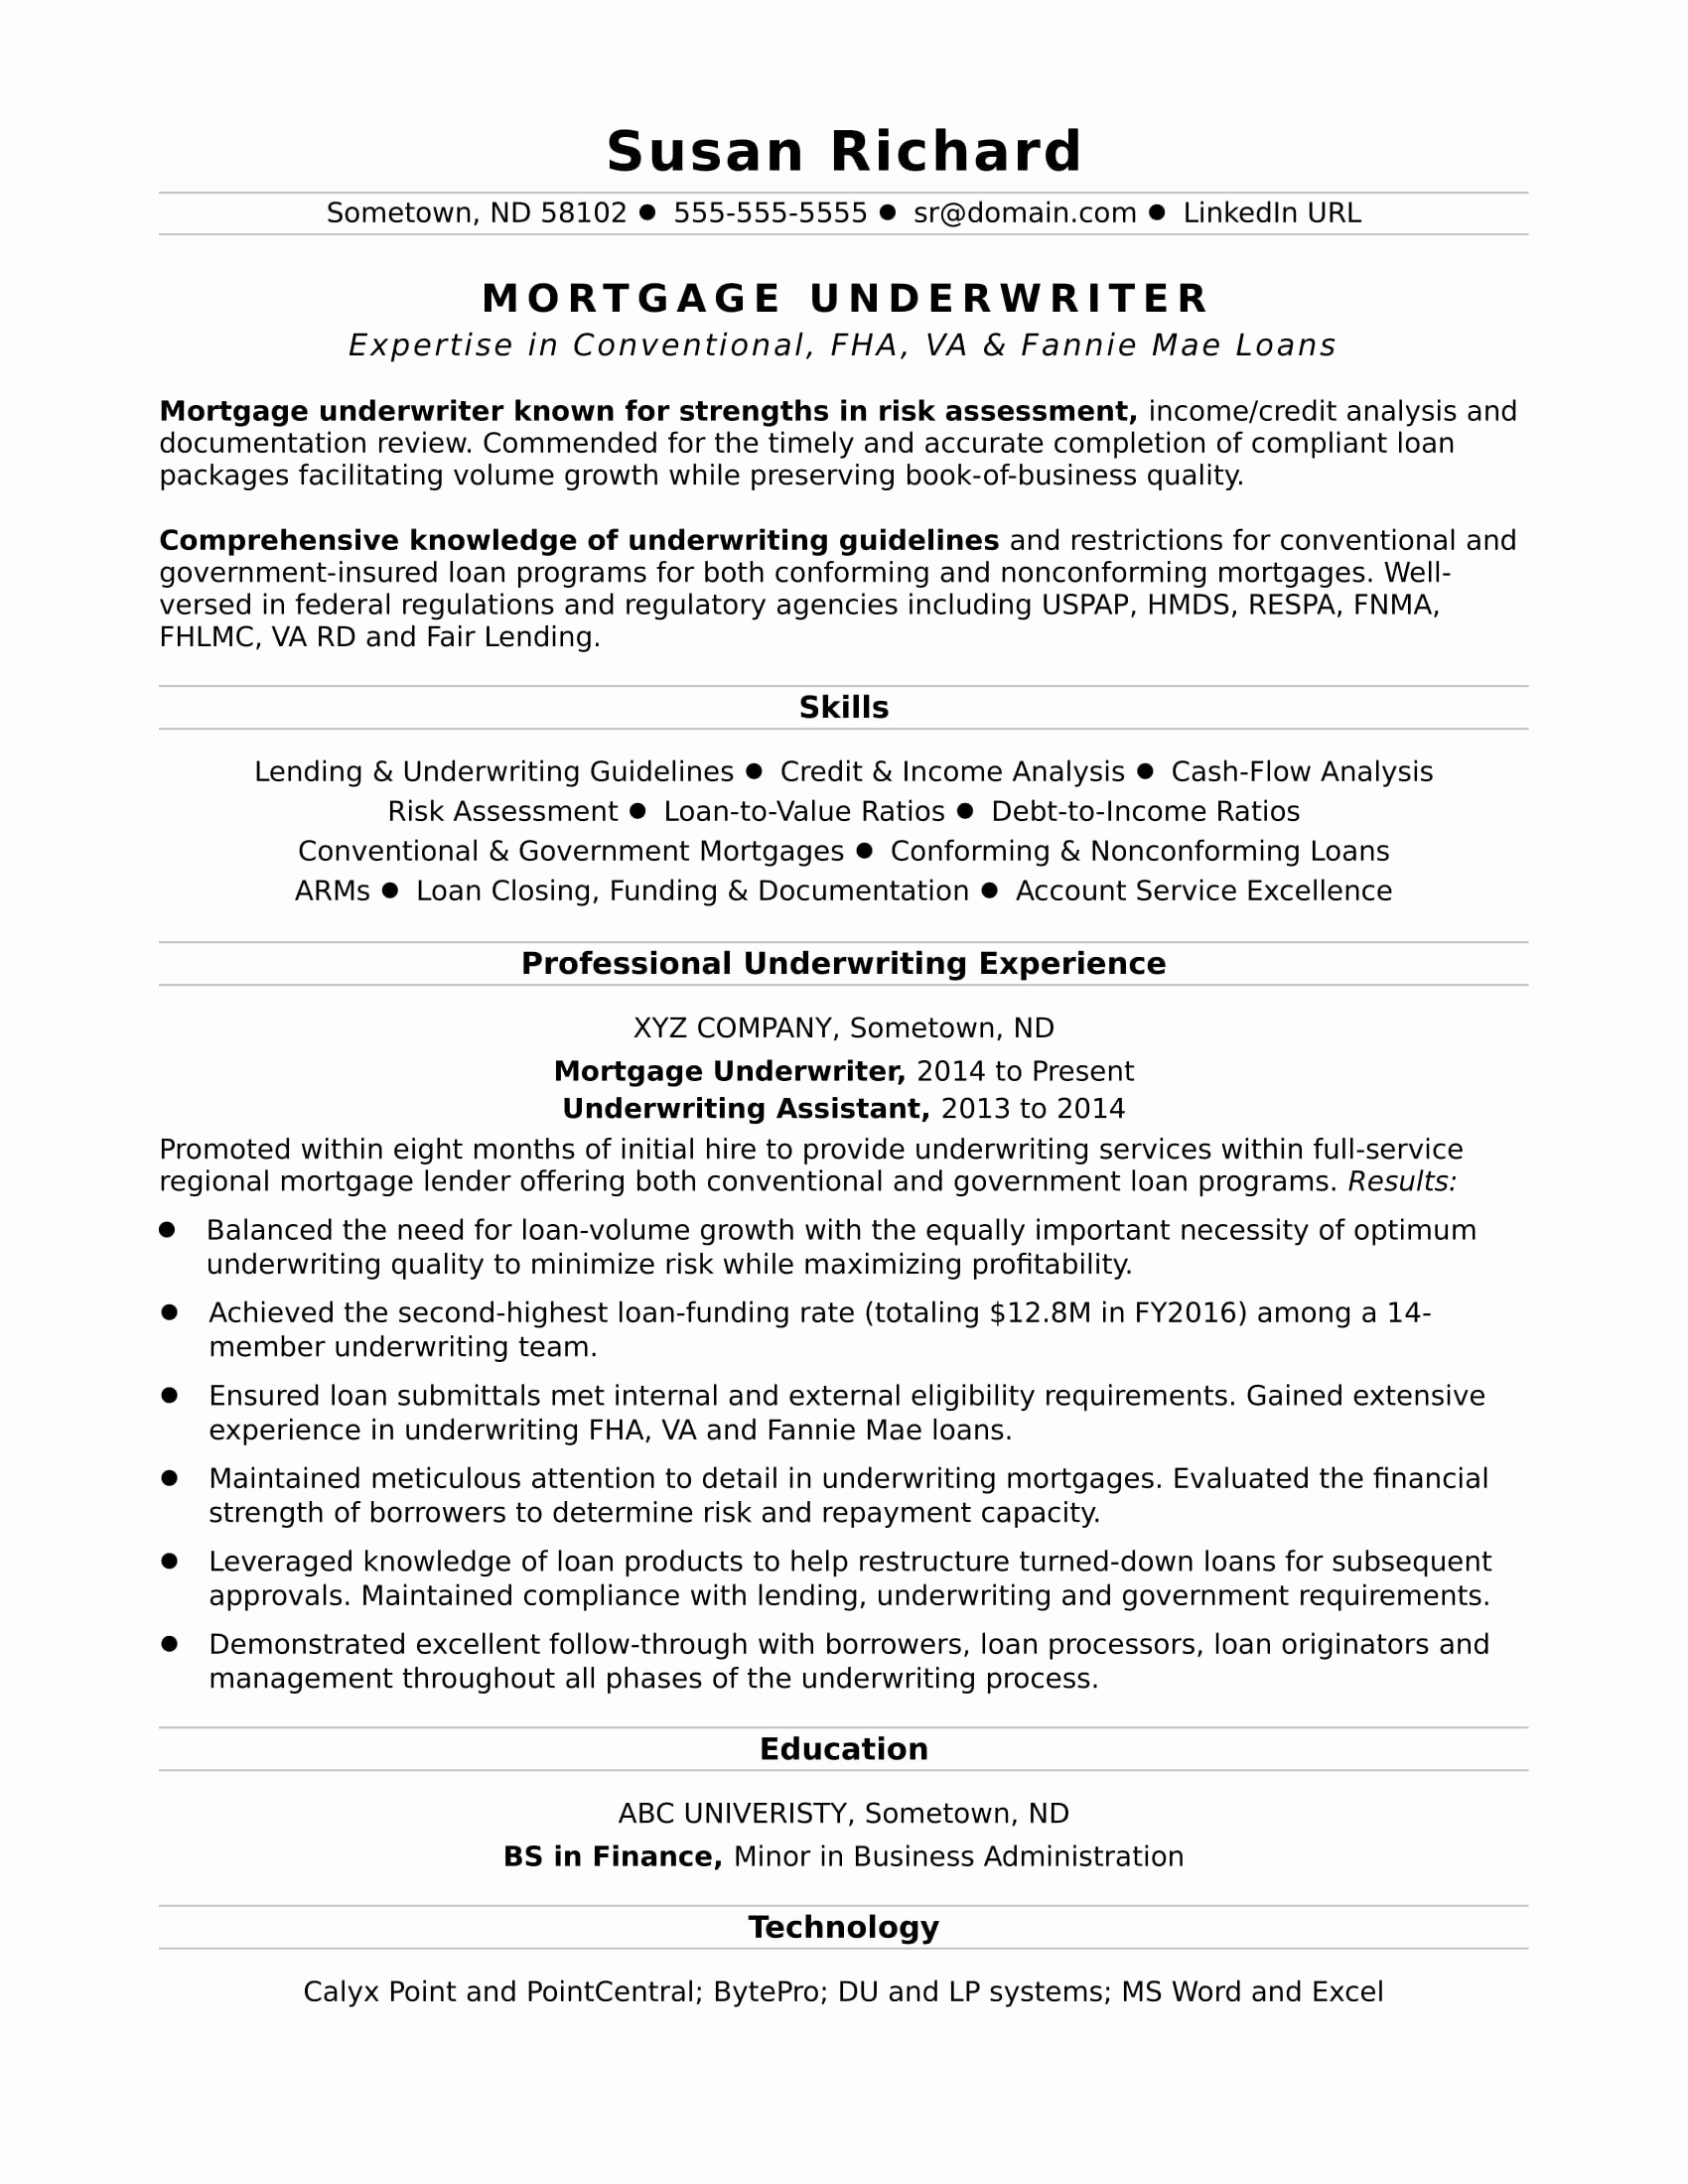 Resume and Linkedin Profile Writing - Linkedin Cover Letter Template Examples